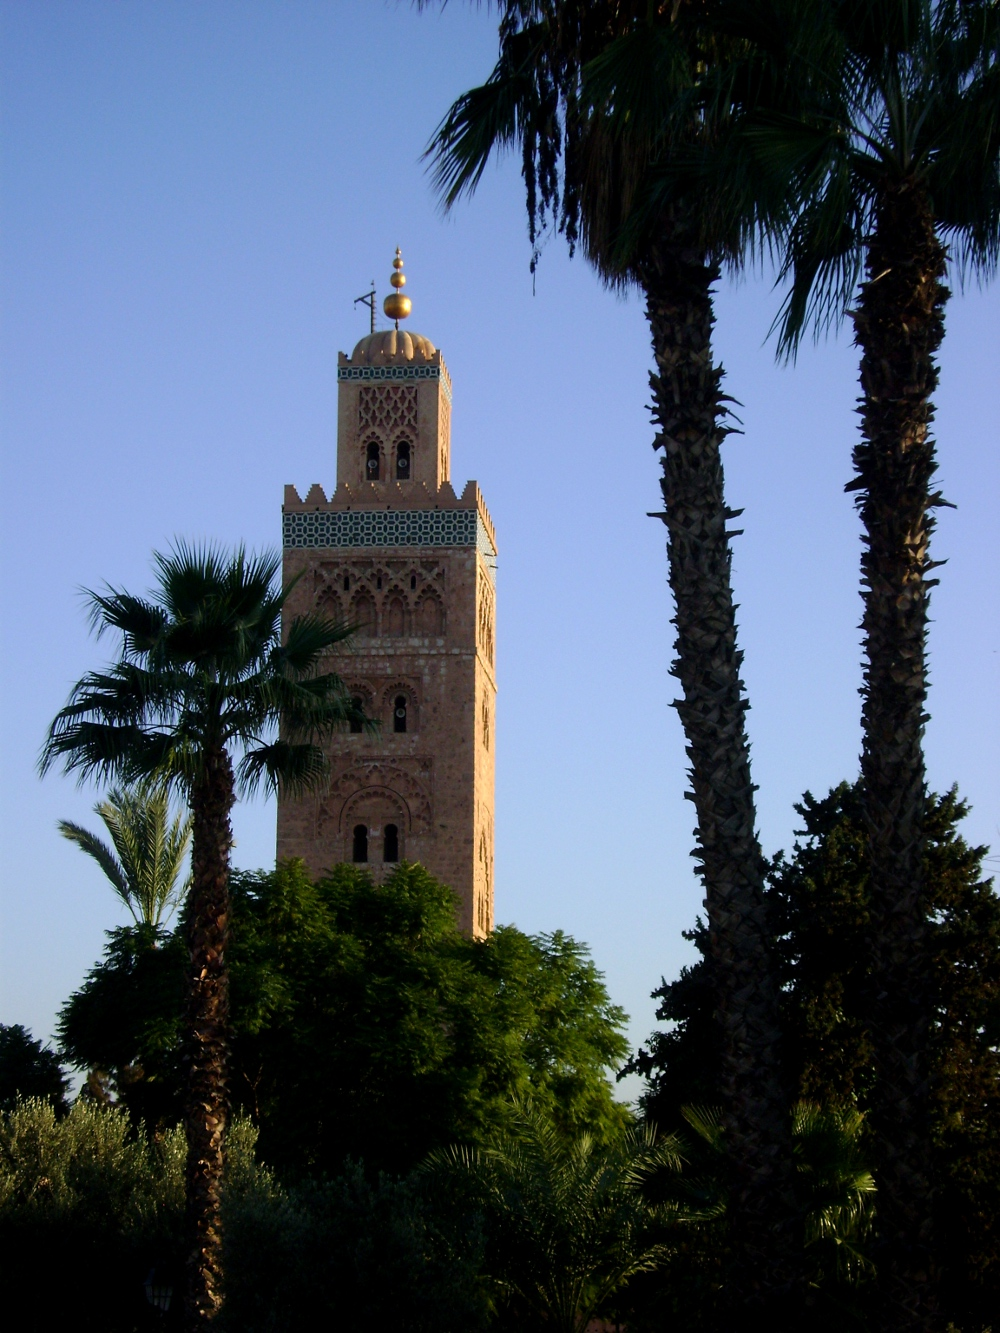 The Koutoubia Mosque's minaret tower stands above everything